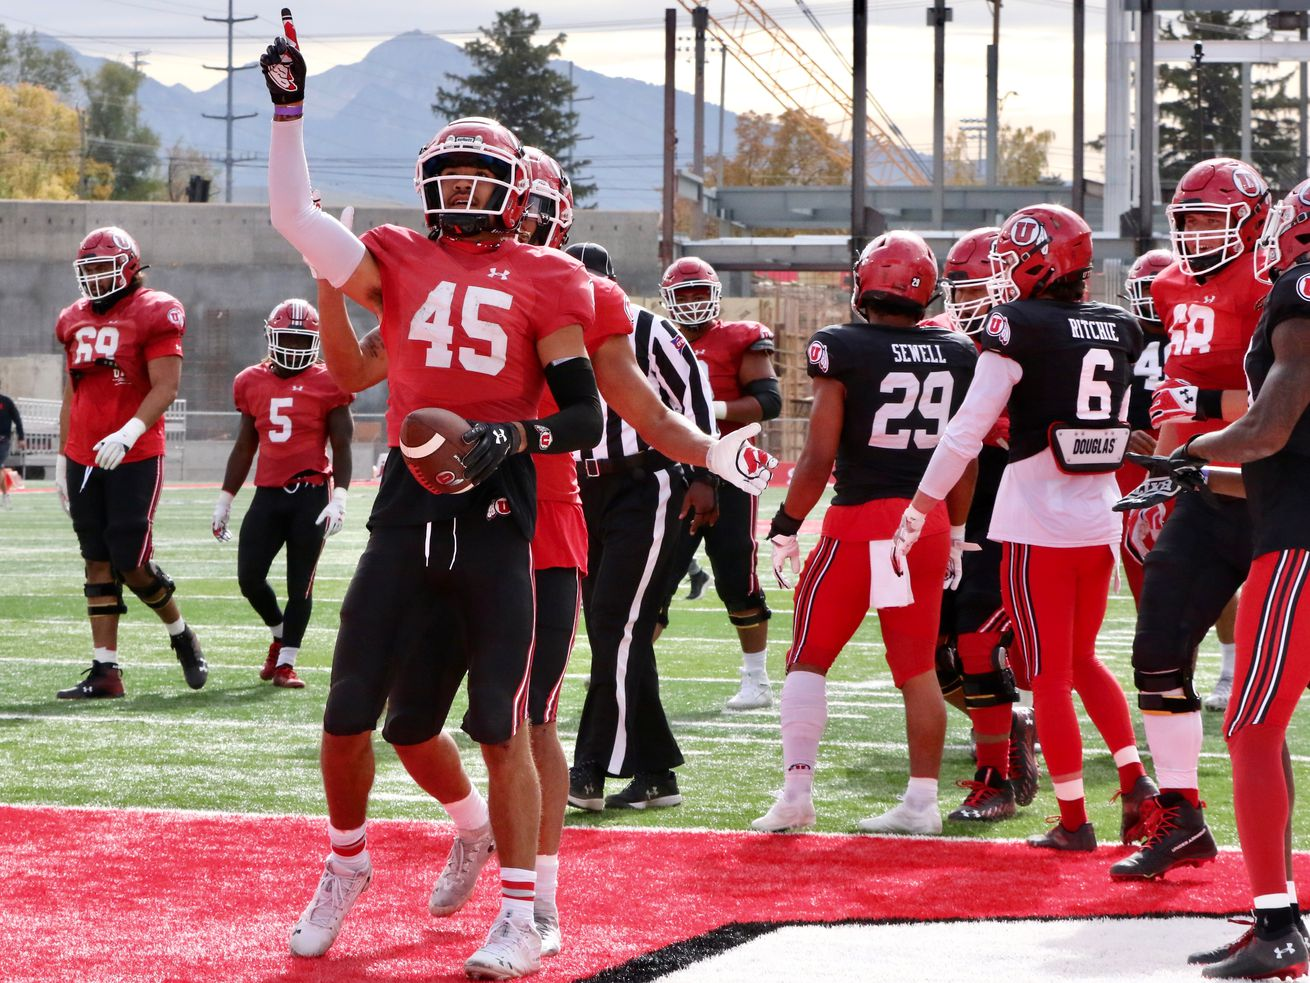 Kyle Whittingham pleased with Utah's second scrimmage